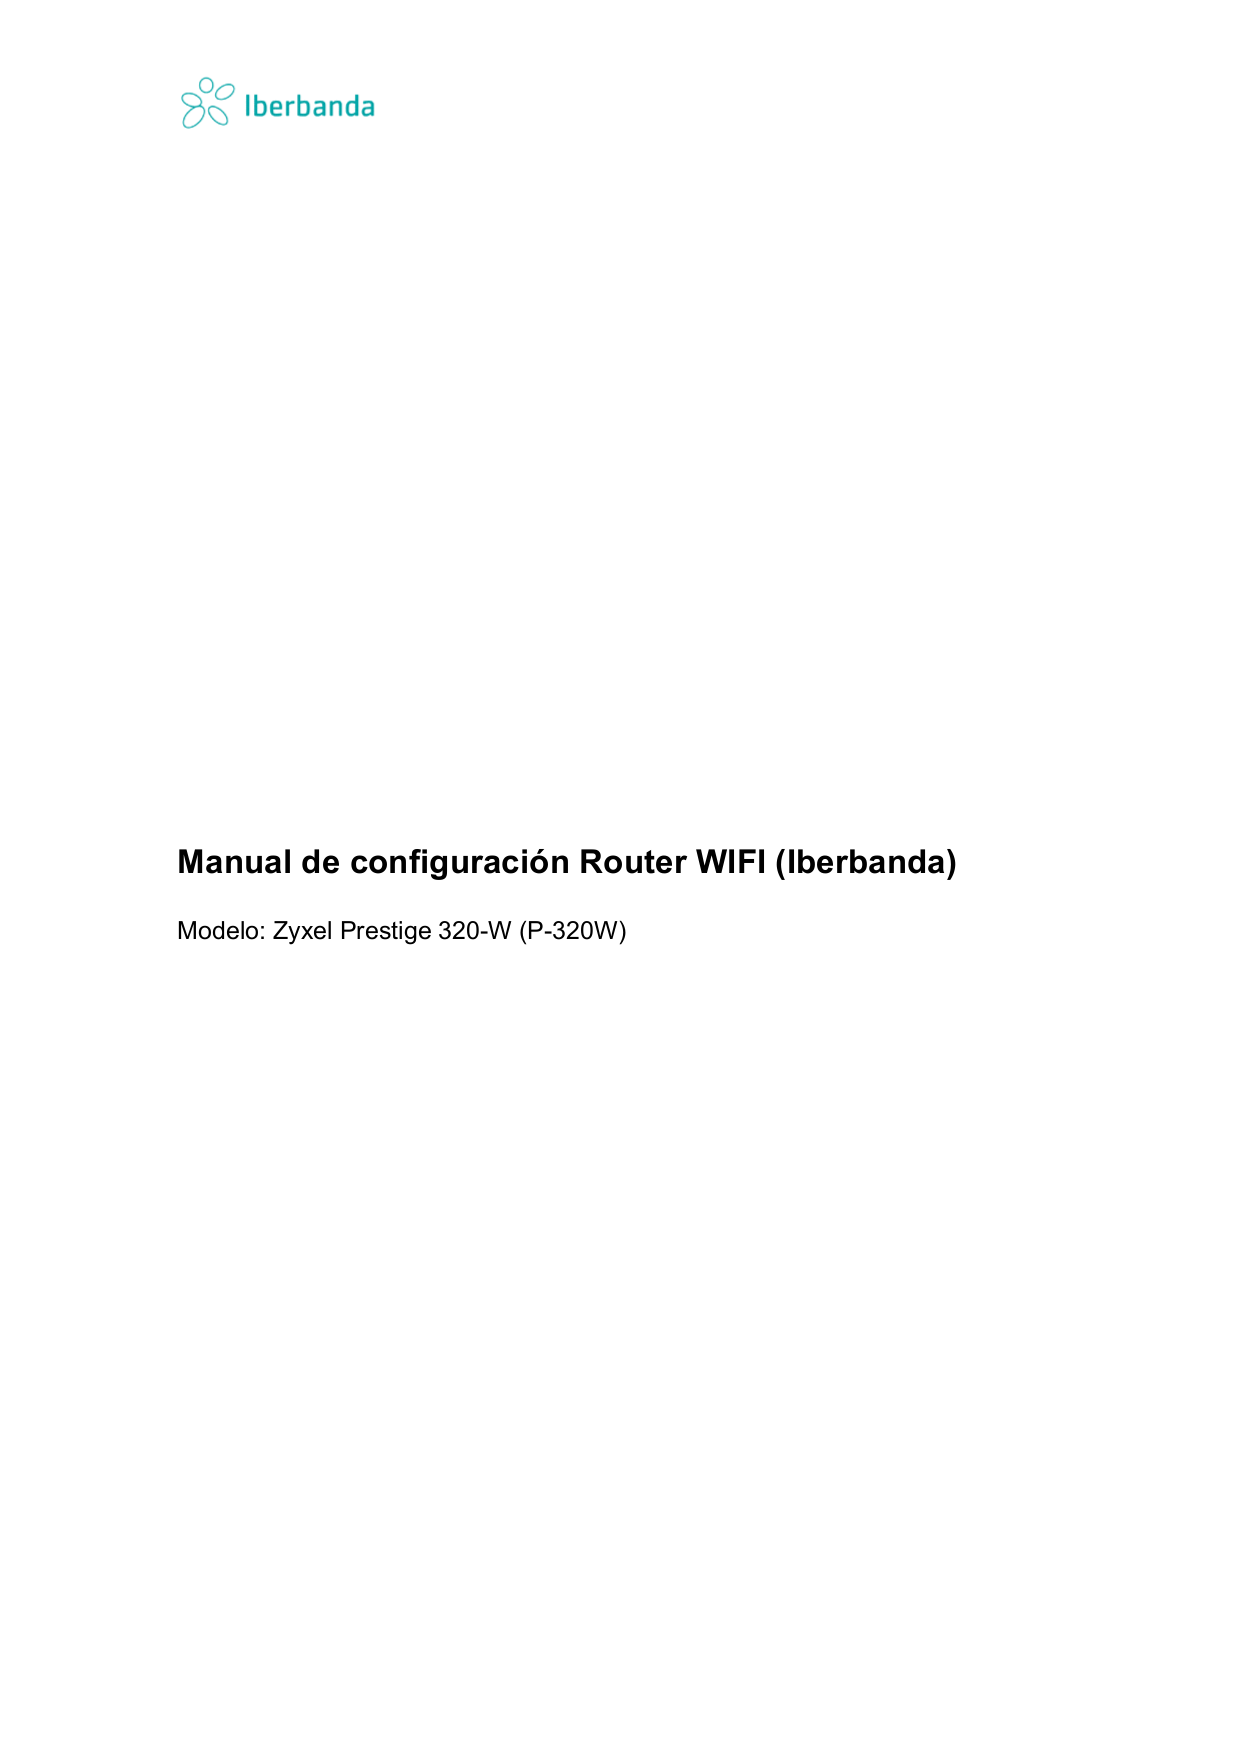 pdf for Zyxel Wireless Router P-320W manual